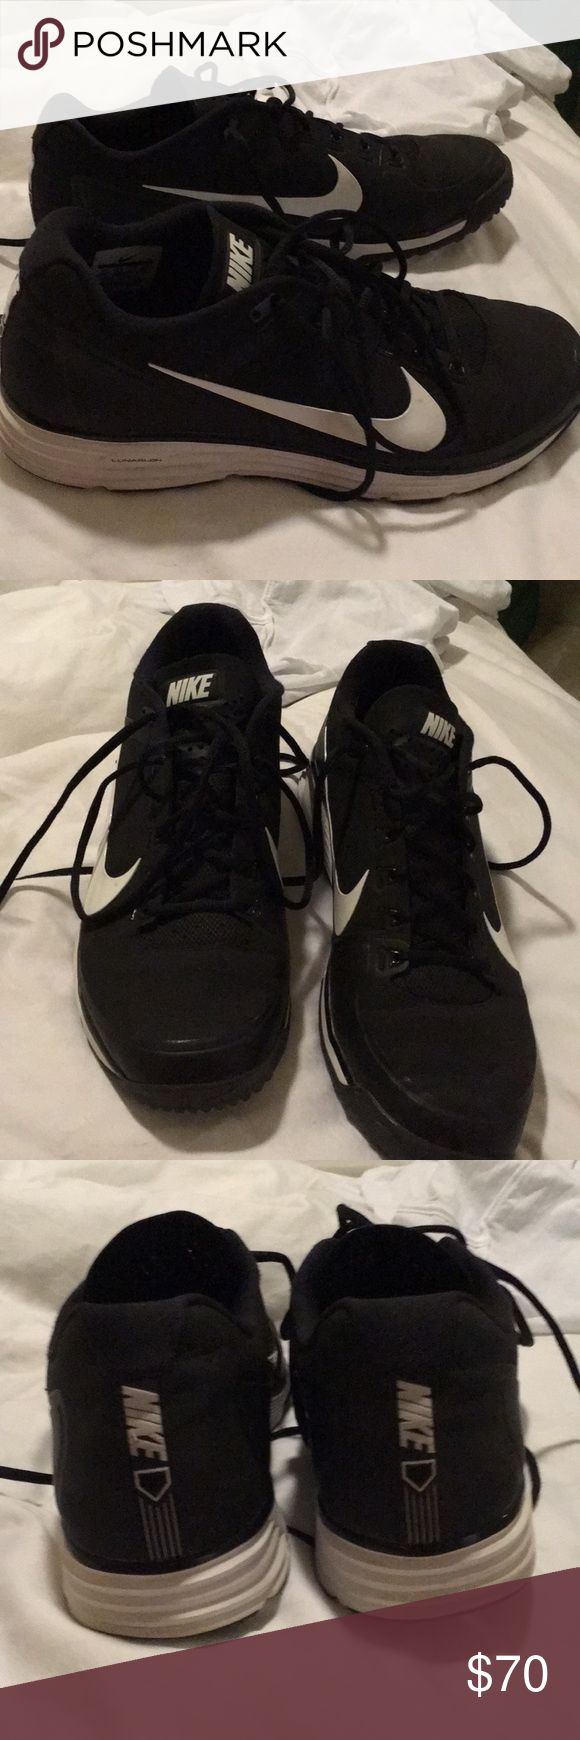 Nike athletic turf shoes Black athletic turf shoes great shoes for cross training or sport activities. Worn 4-5 times in like new condition Nike Shoes Athletic Shoes